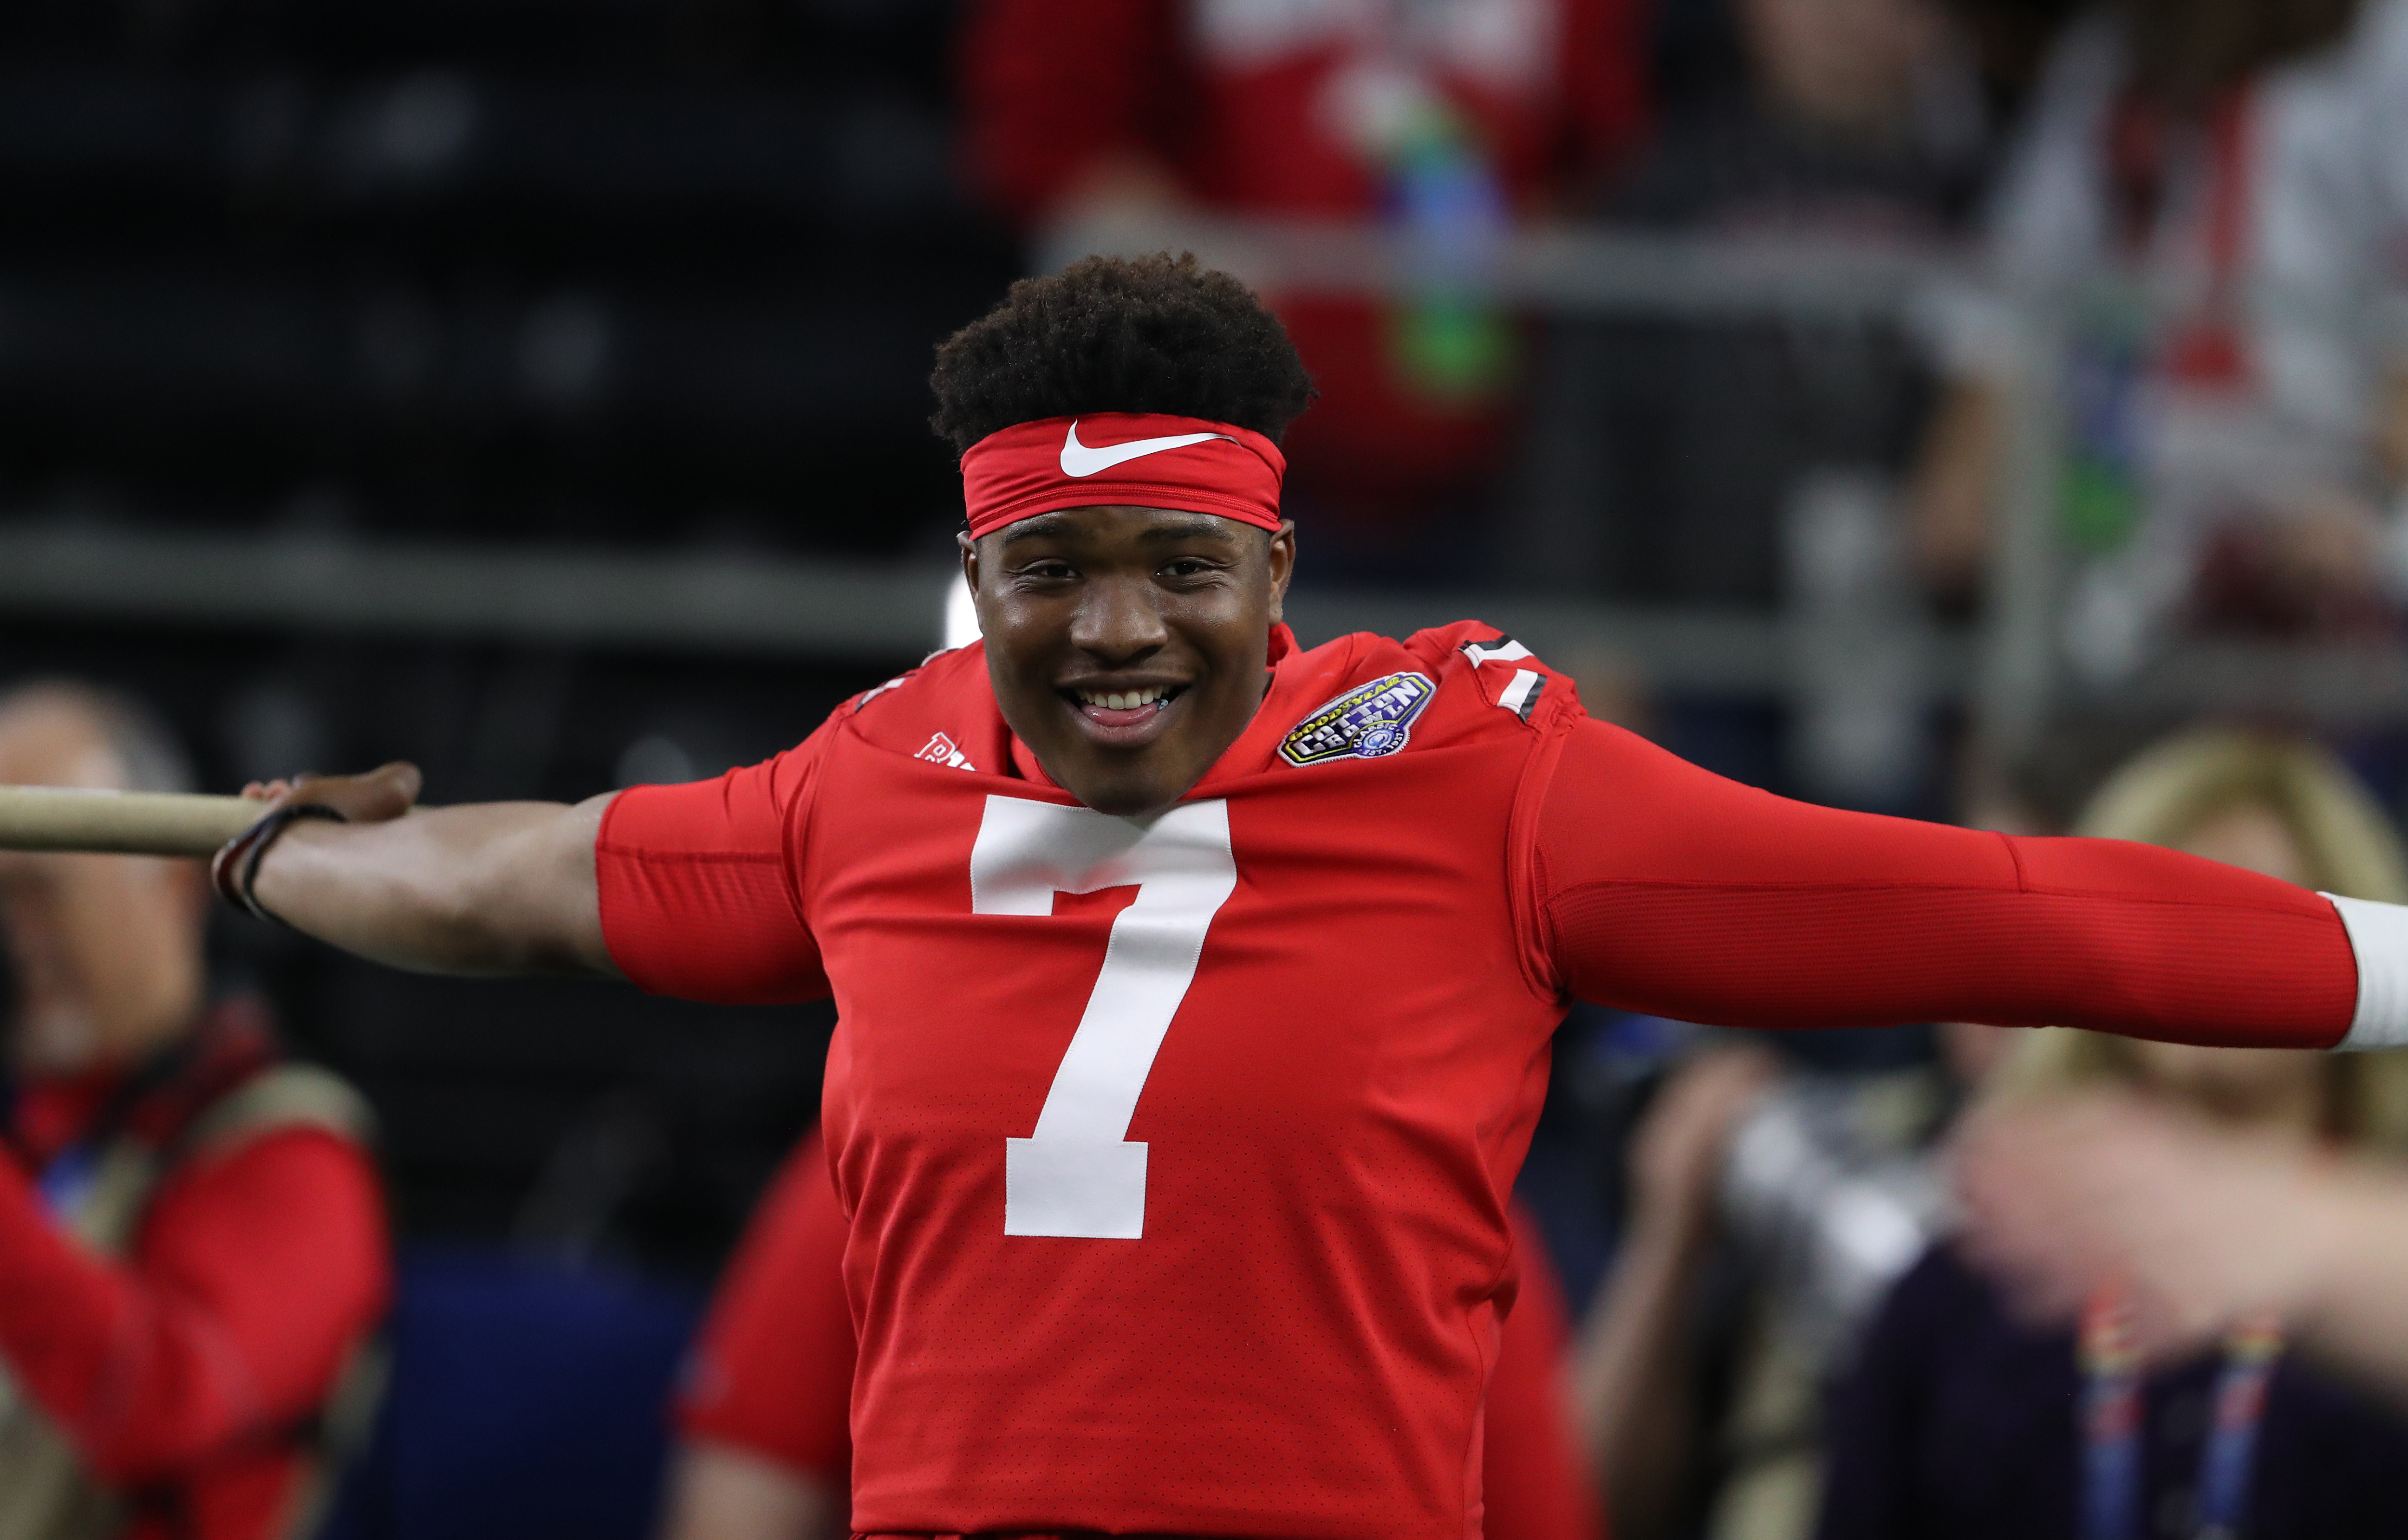 info for 90a7a 18774 Dwayne Haskins will wear #7 for the Redskins, Joe Theismann ...